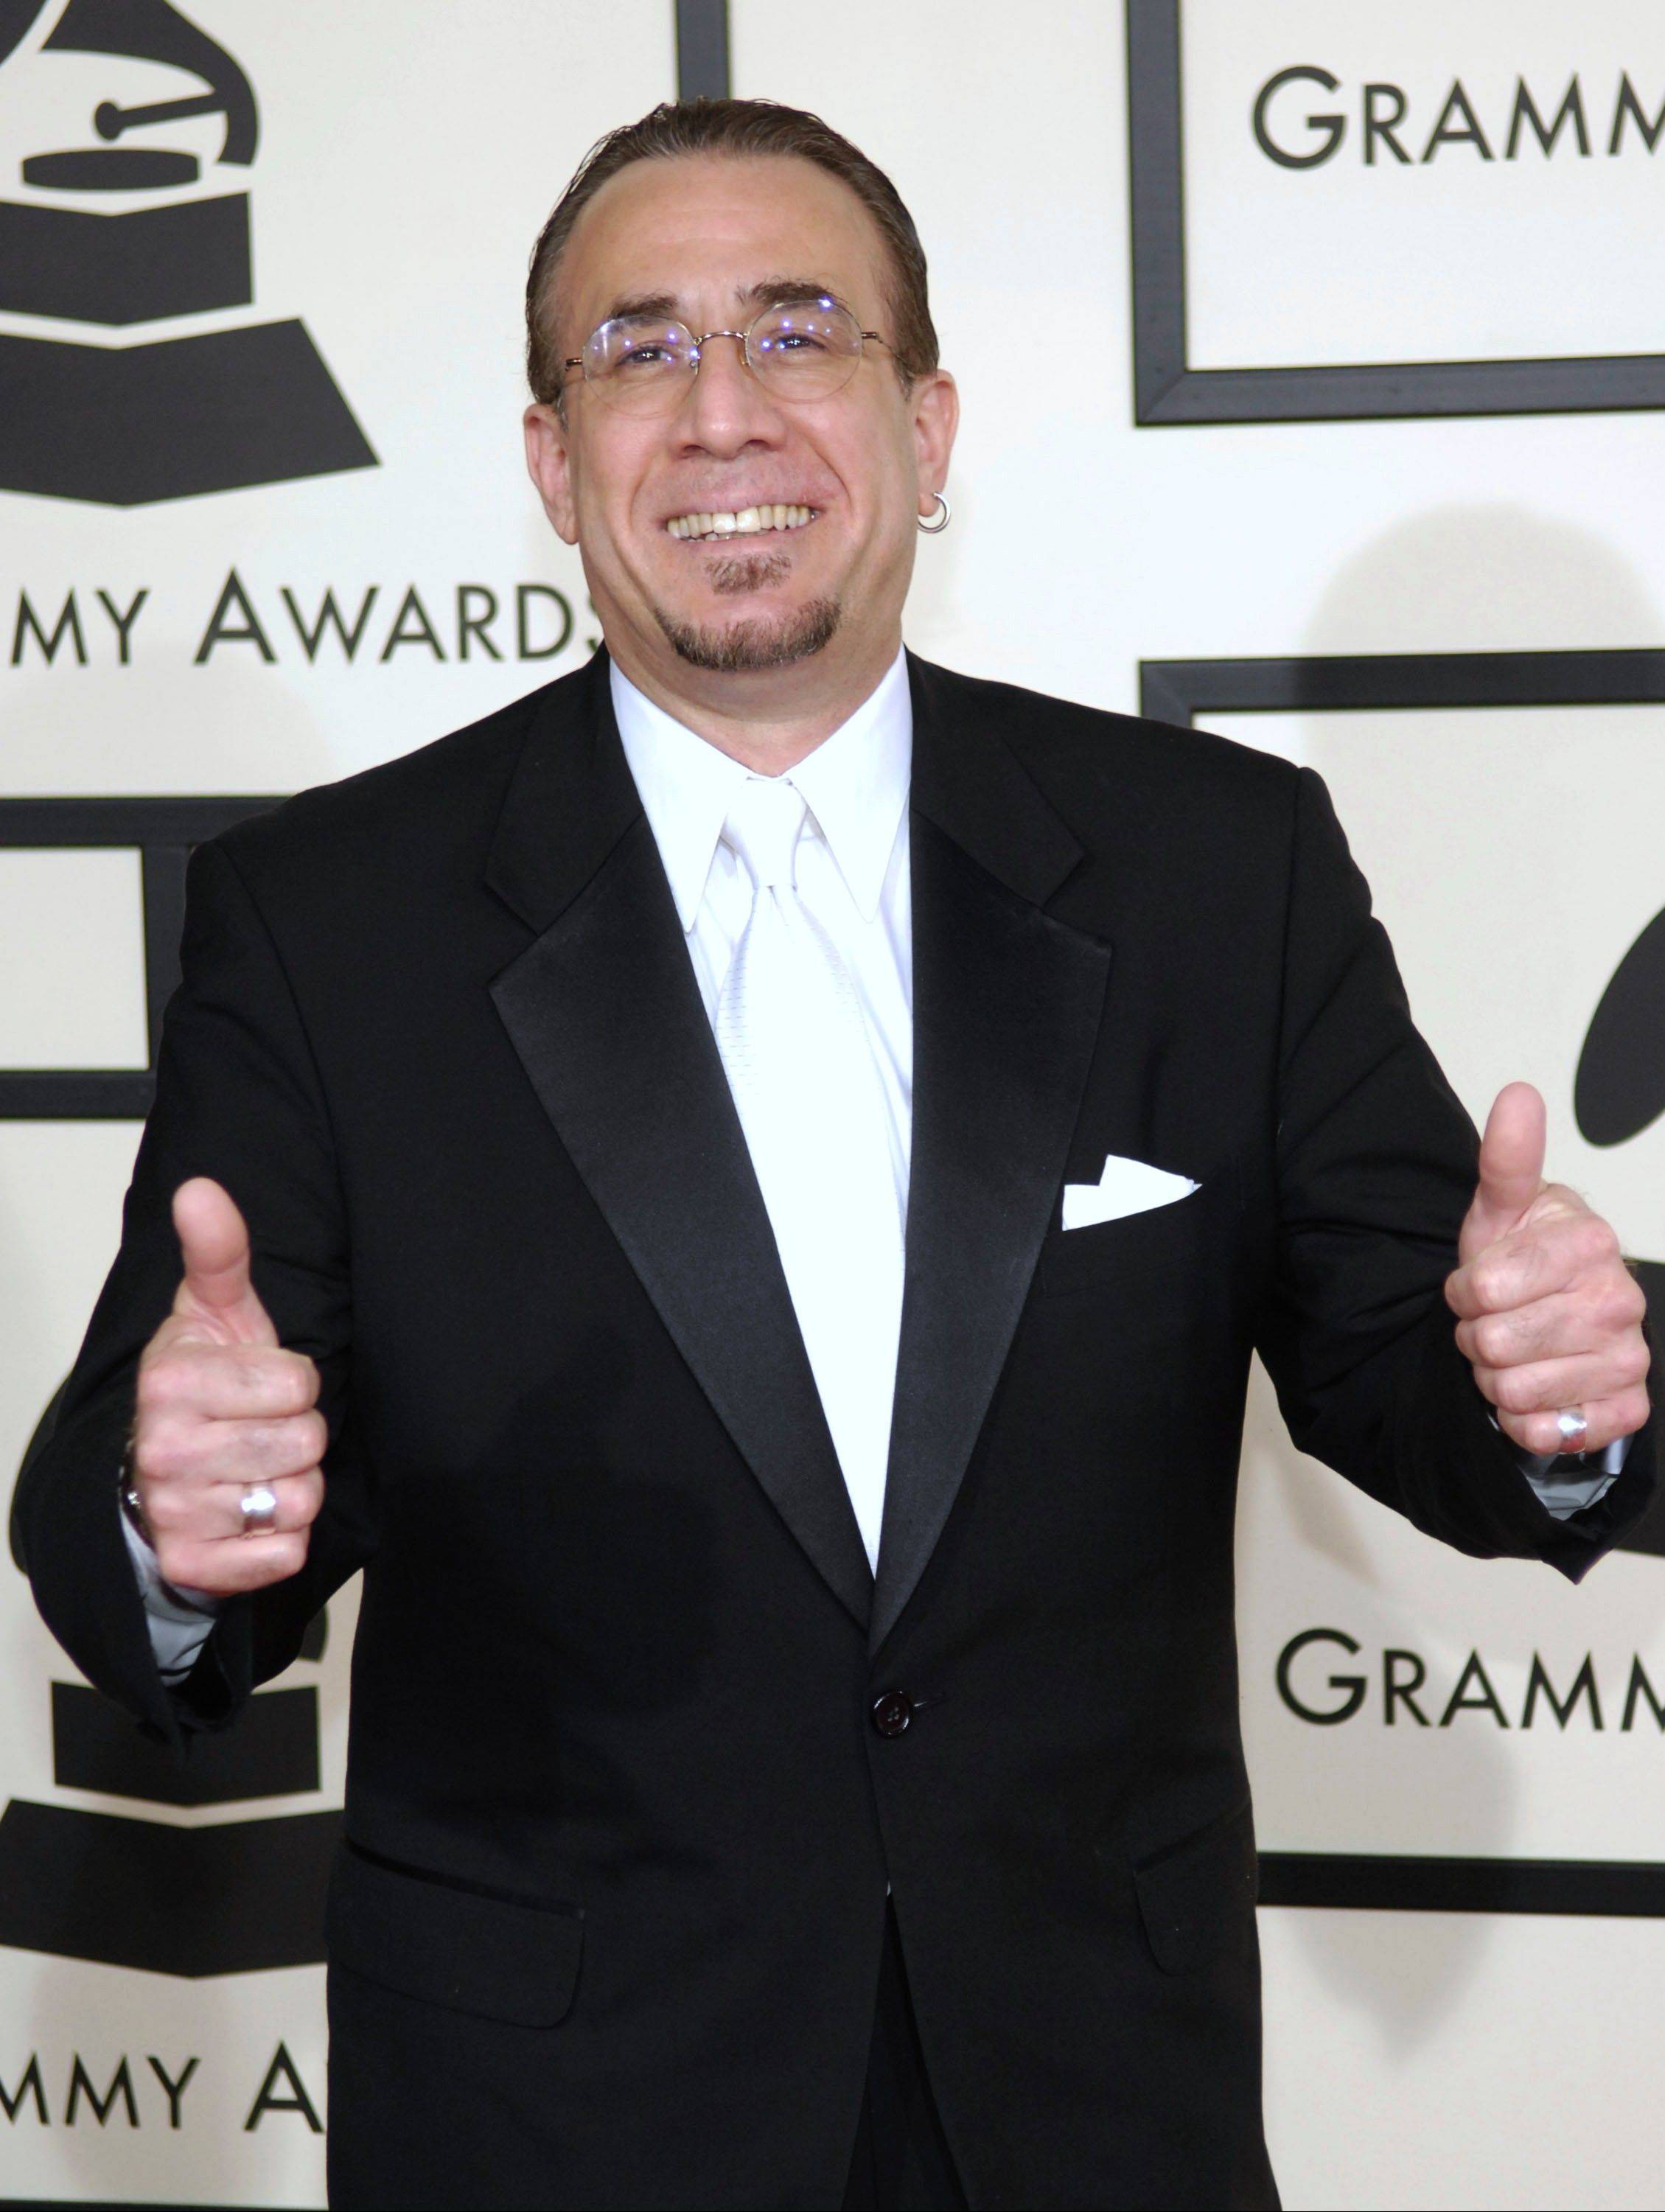 Latin jazz musician Bobby Sanabria, who led the protest against the Recording Academy when it downsized from 109 to 78 categories in 2011, is nominated for best Latin jazz album — one of the awards that had been eliminated but returns at the awards show this year.